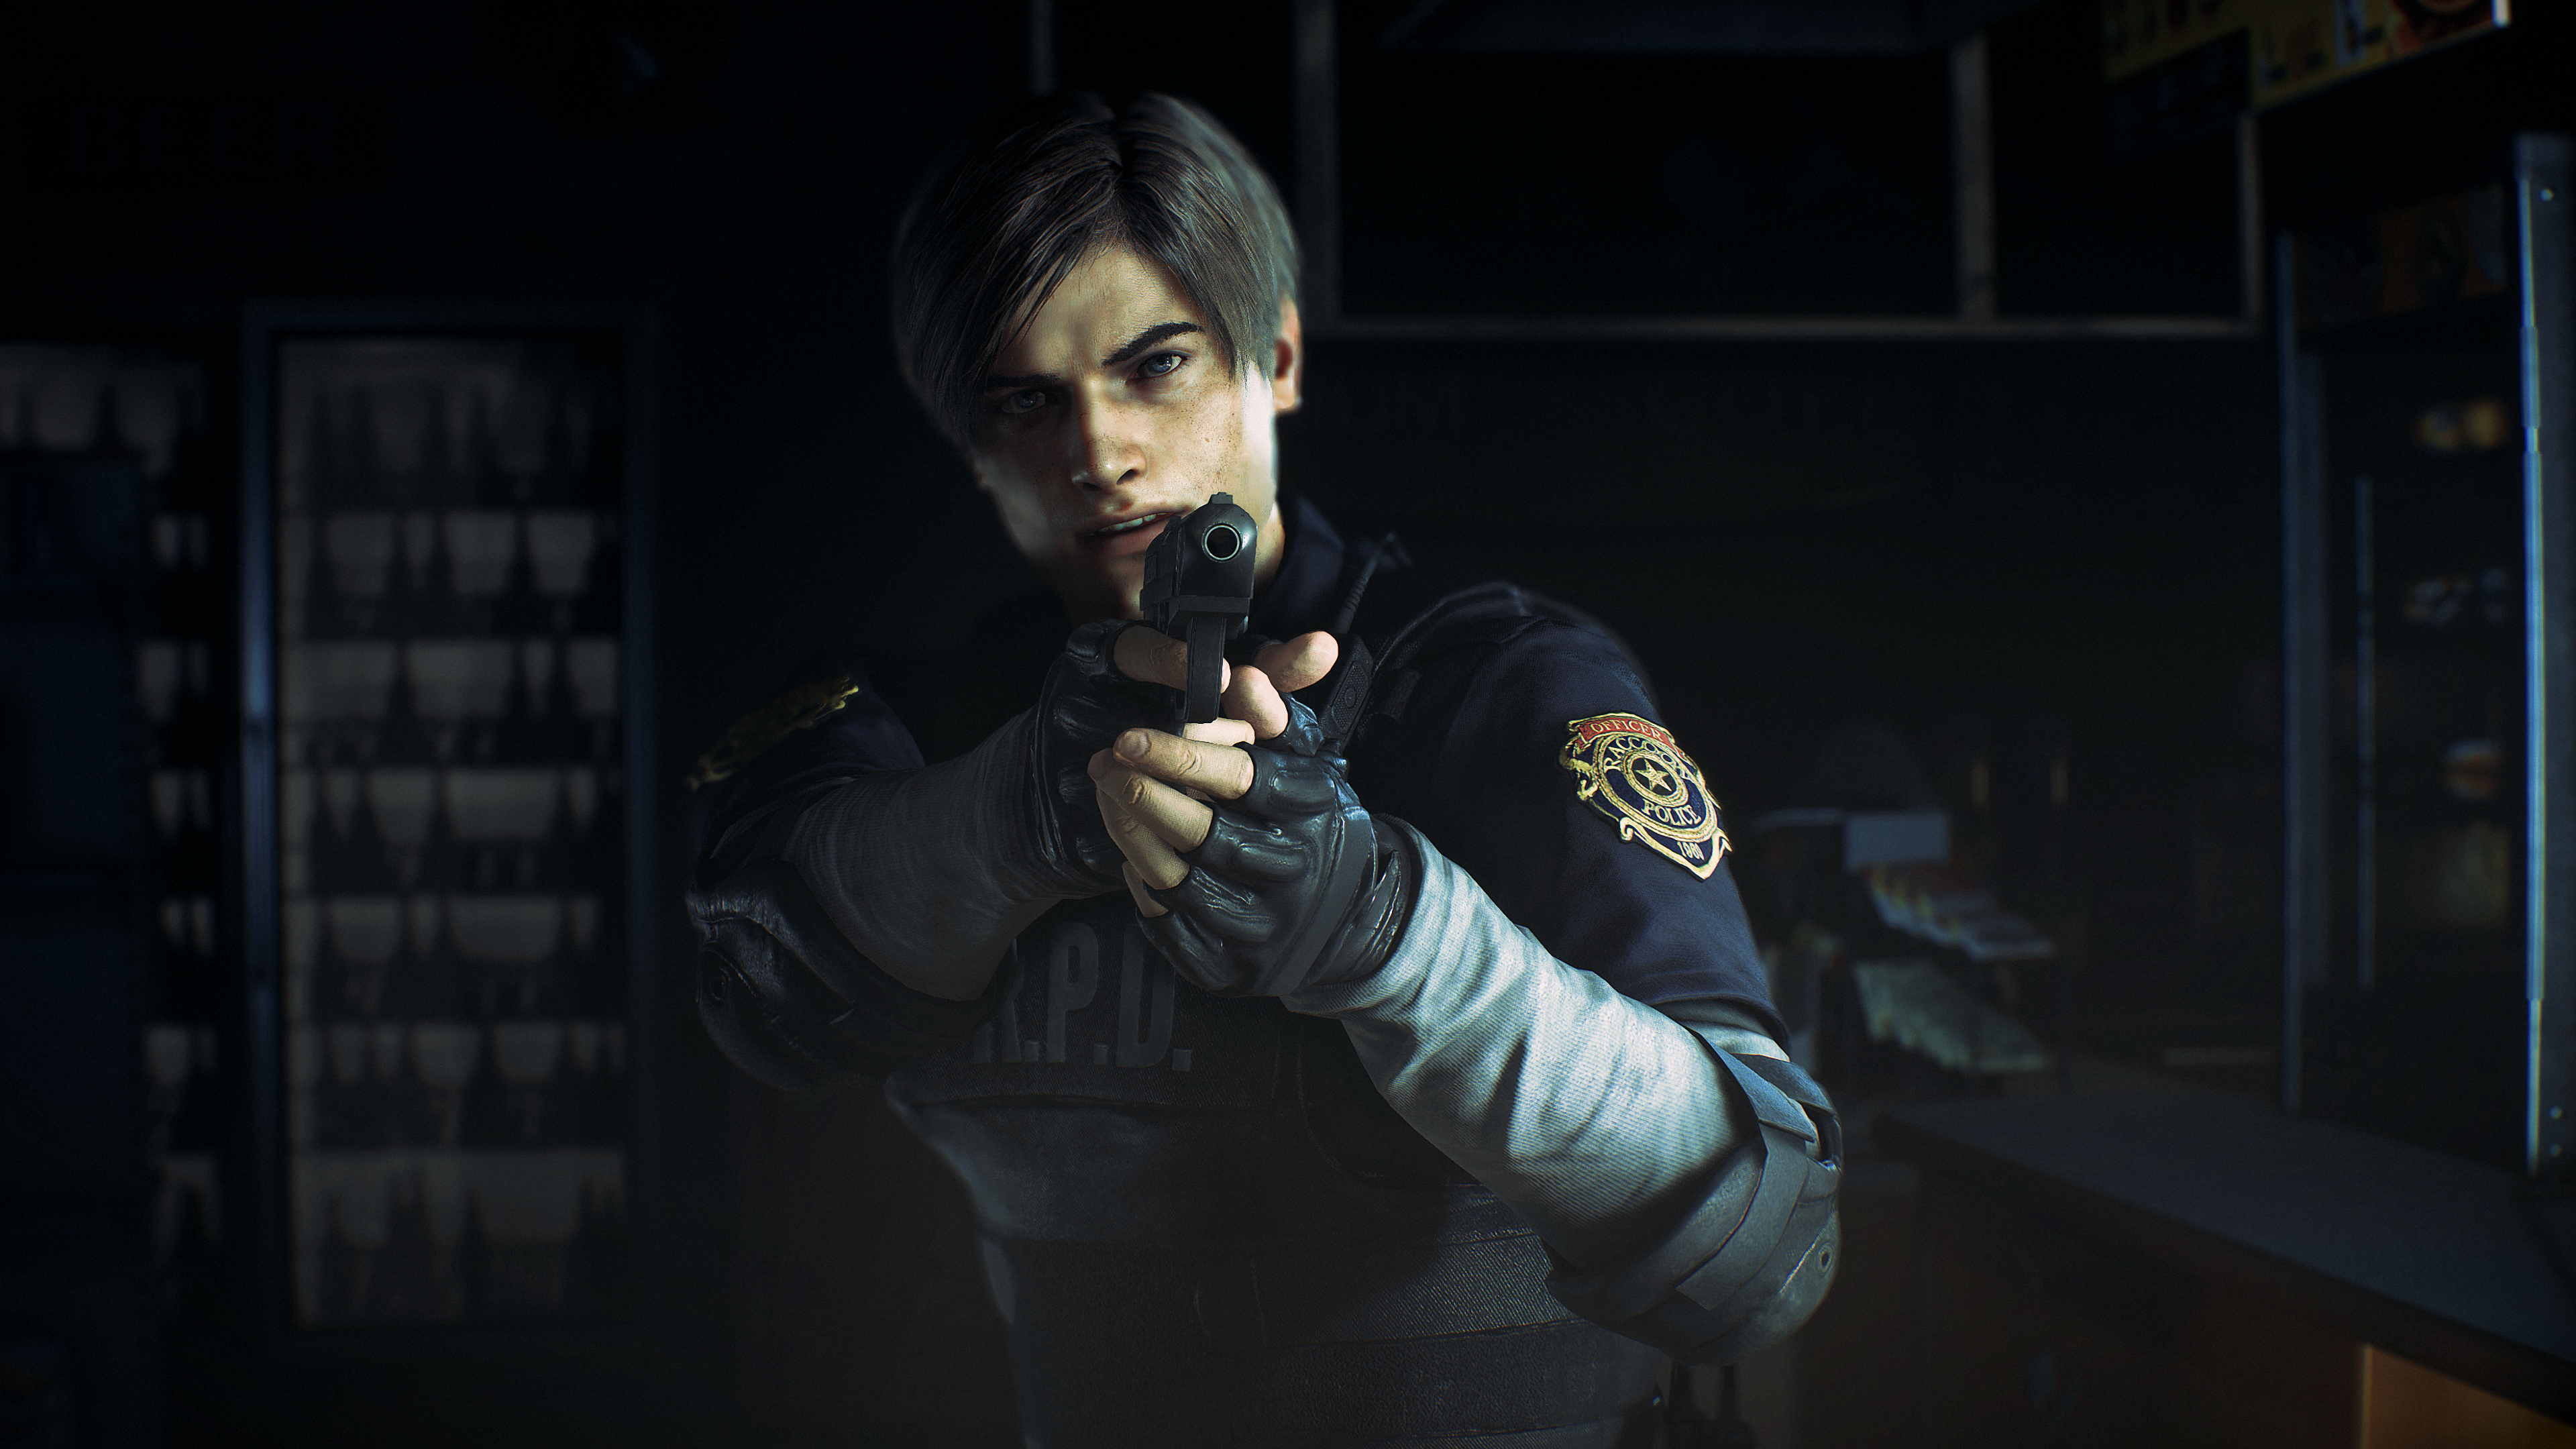 The Resident Evil 2 remake revives the sexy side of its star